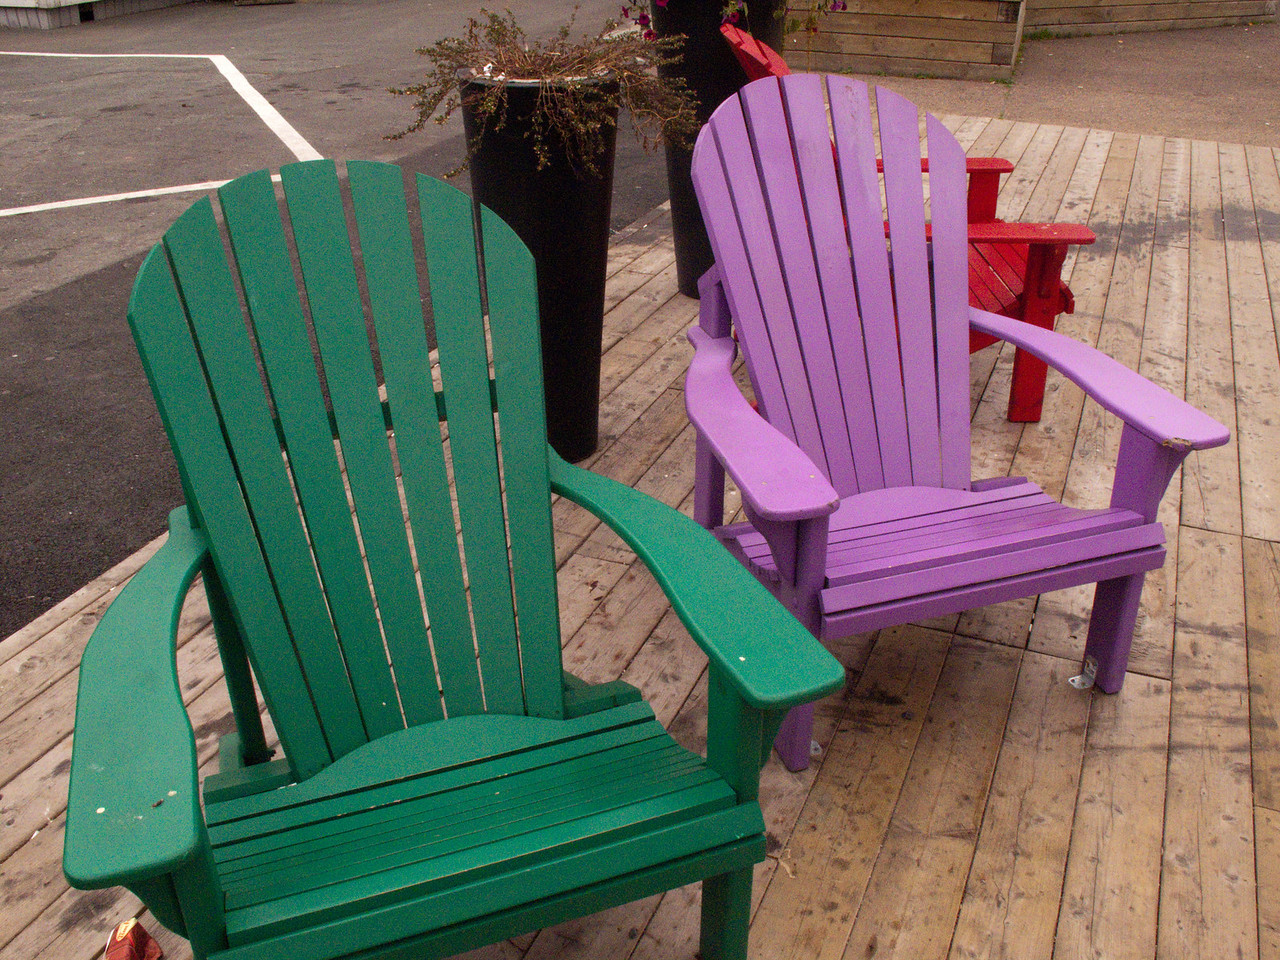 Welcoming chairs at the dock area in Halifax.